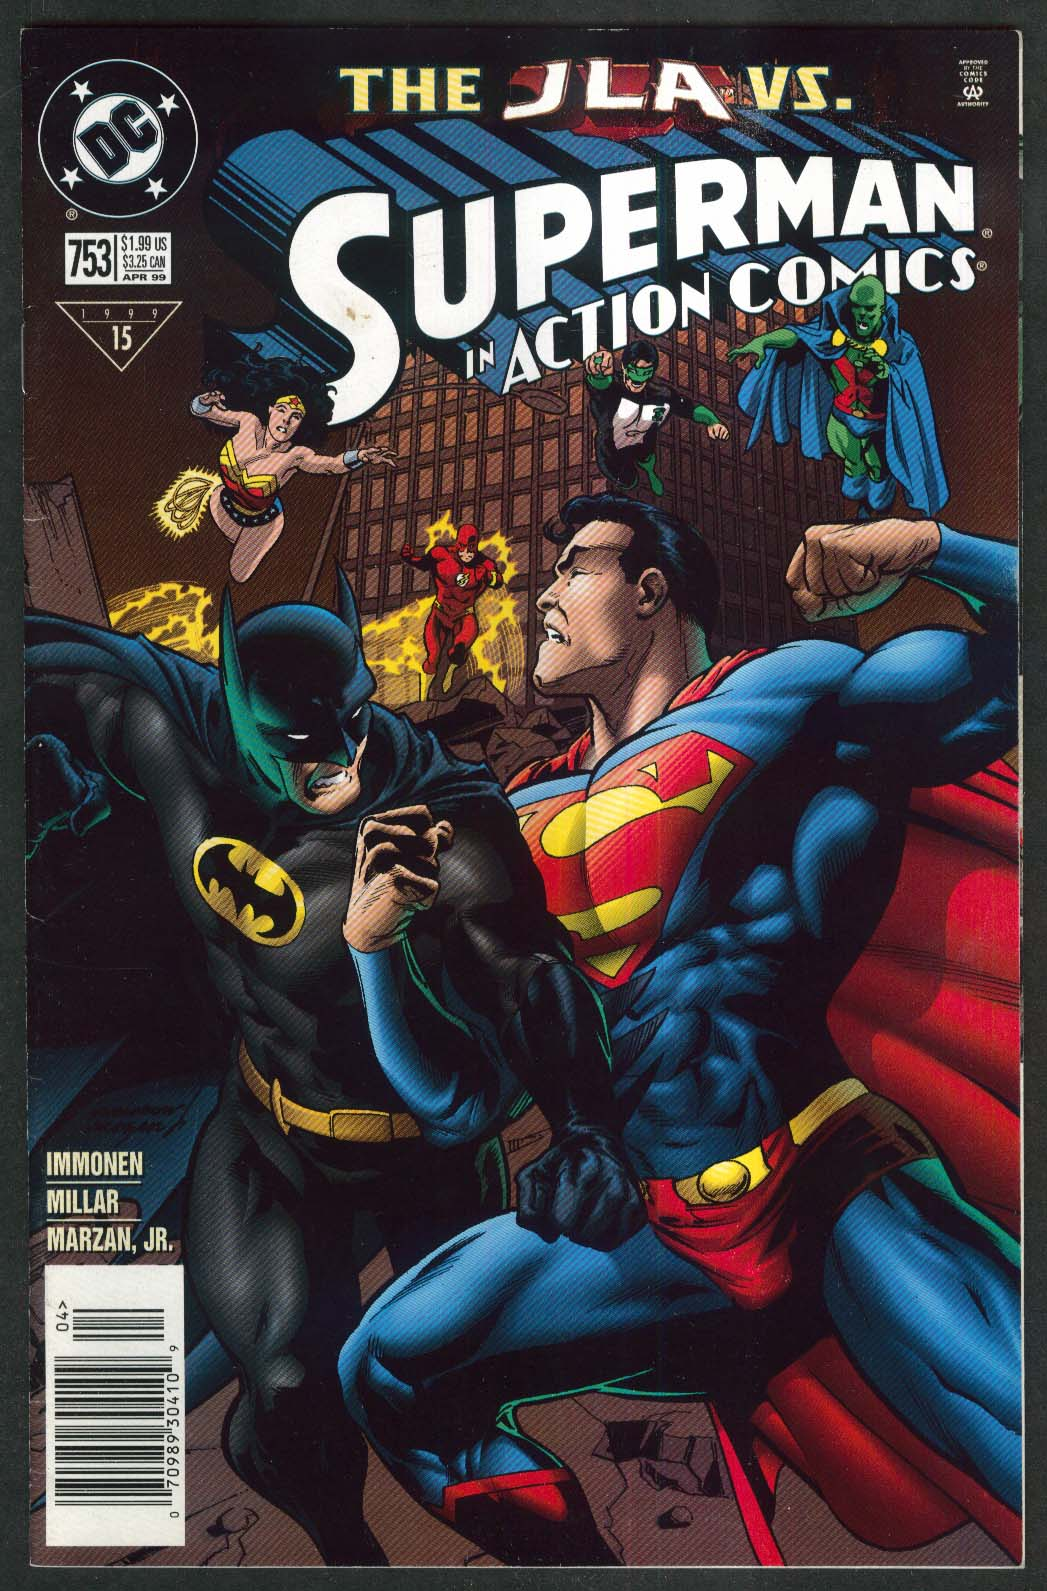 ACTION COMICS #753 DC comic book 4 1999 JLA vs Superman